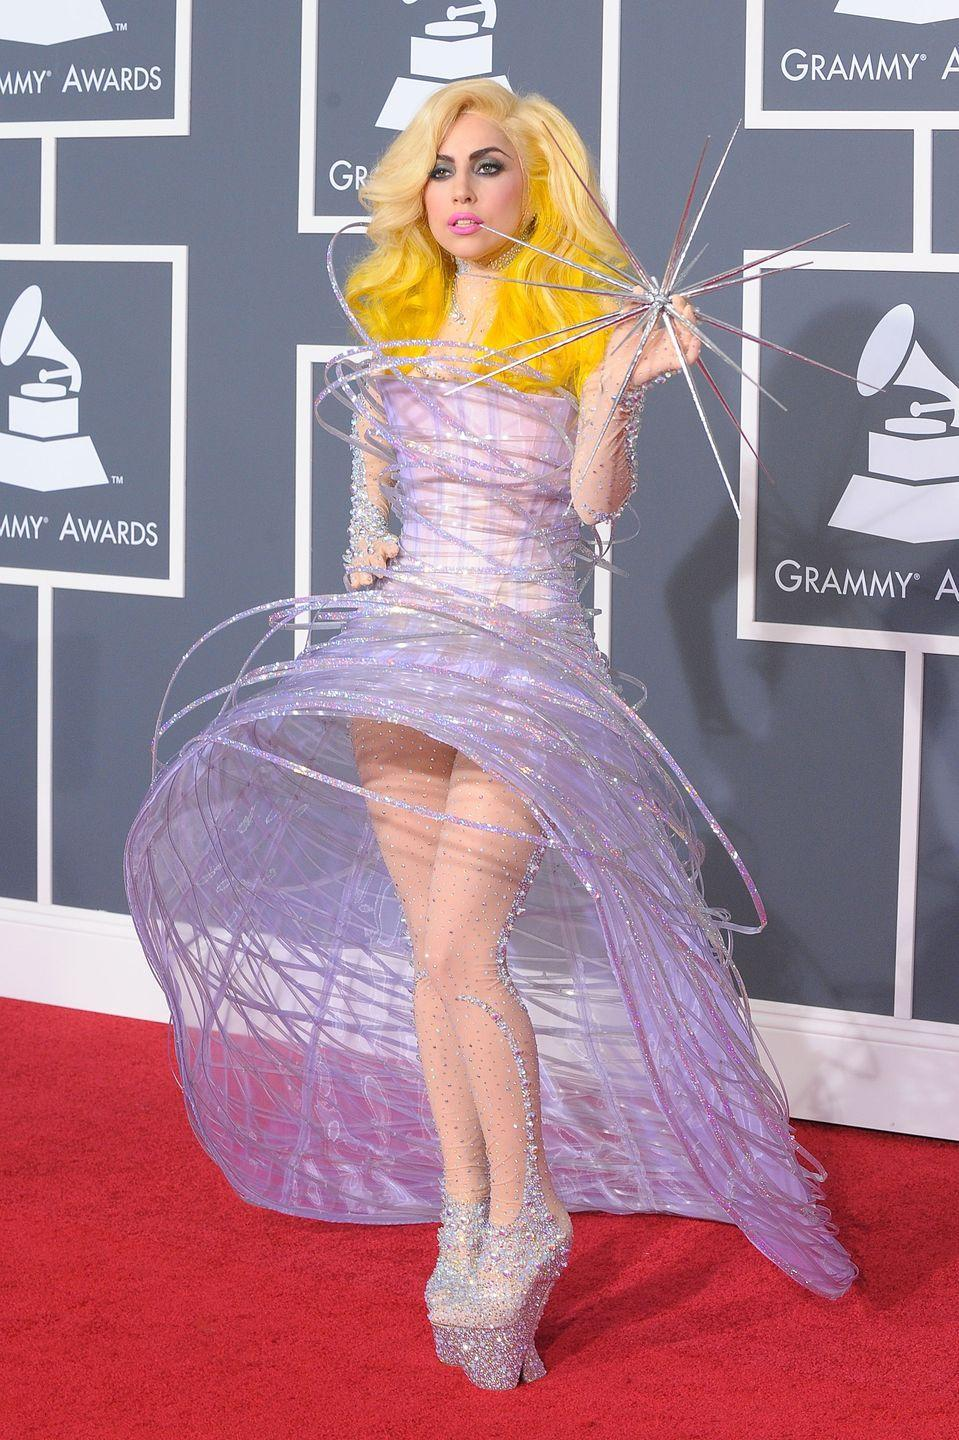 <p>At the turn of the decade Lady Gaga was riding high off the release of hits such as 'Paparazzi', 'Bad Romance' and 'Telephone', and was experimenting with a more futuristic aesthetic - summed up by her appearance at the 2010 Grammys. The singer arrived wearing a sculptural Giorgio Armani dress covered in glittering tubes, paired with towering crystal-encrusted platforms. She carried in her hand a spiked star, finishing off the galactic look. <br></p>